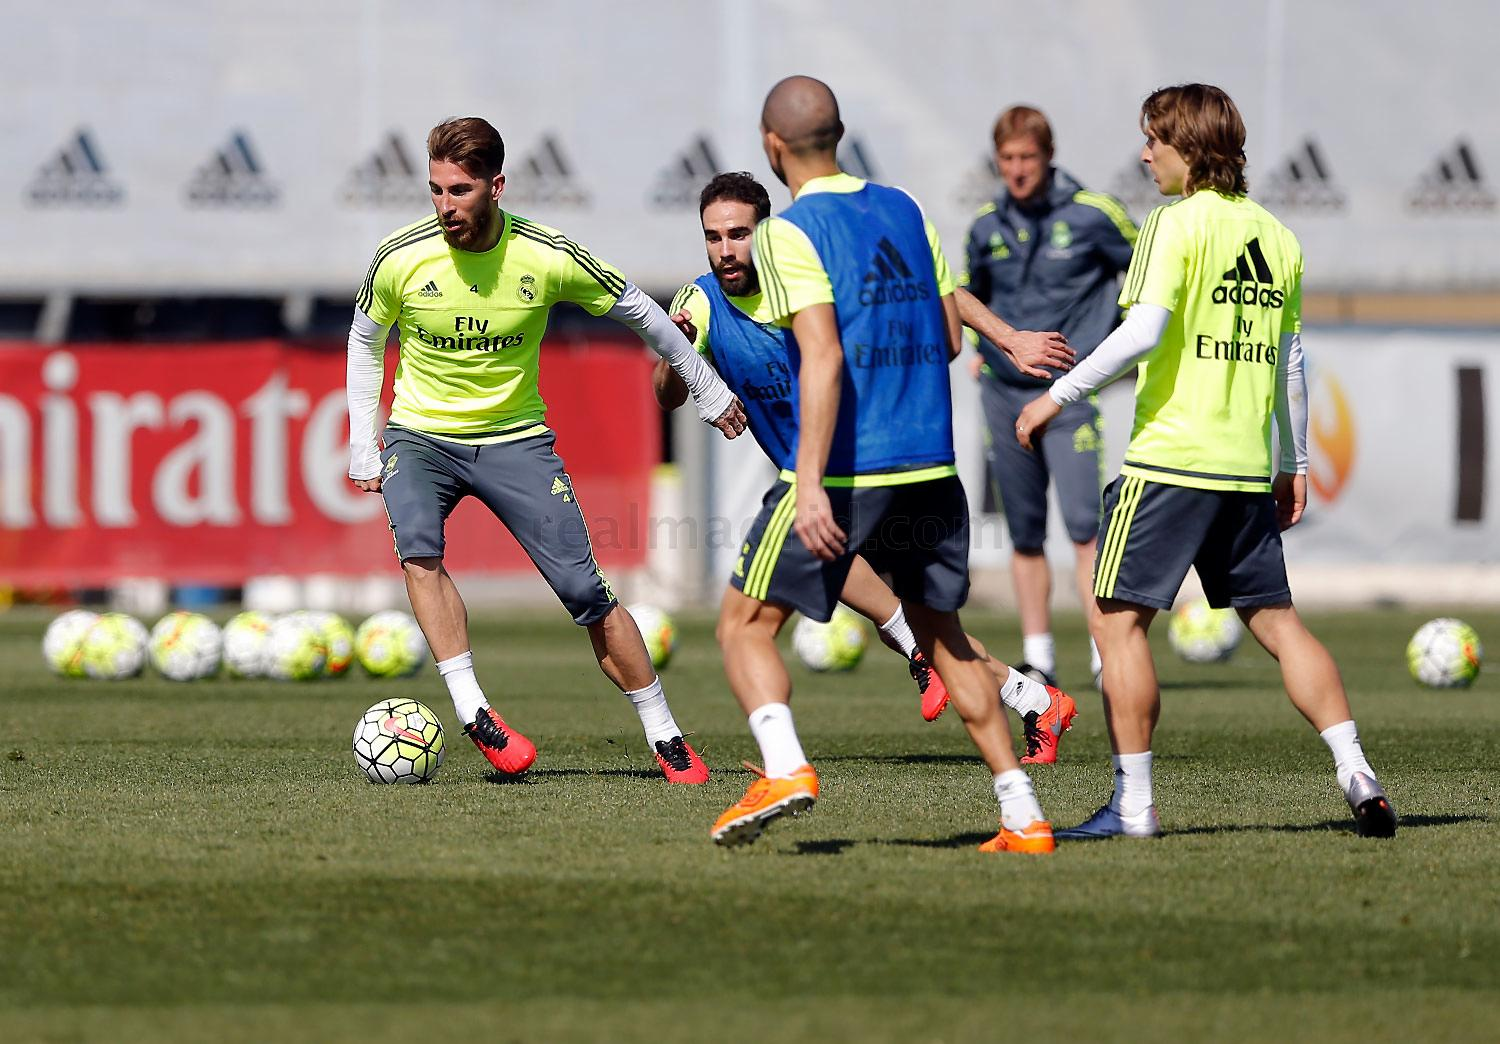 Real Madrid - Entrenamiento del Real Madrid - 16-03-2016